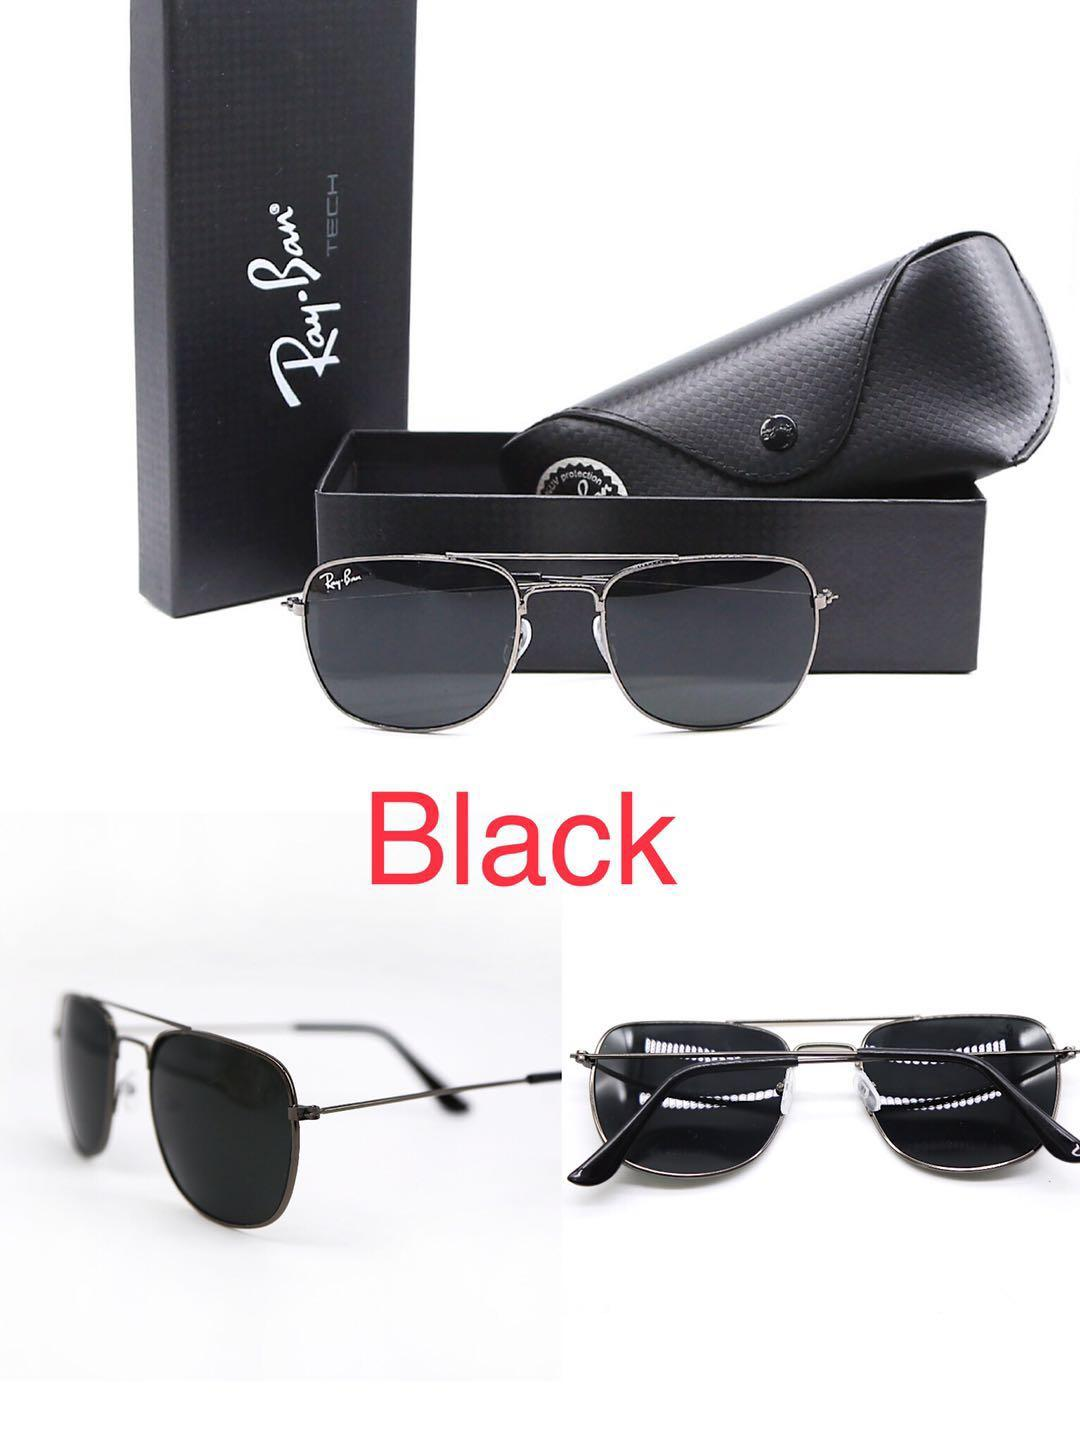 208453ff8874 Sunglasses For Men for sale - Mens Sunglasses Online Deals & Prices ...